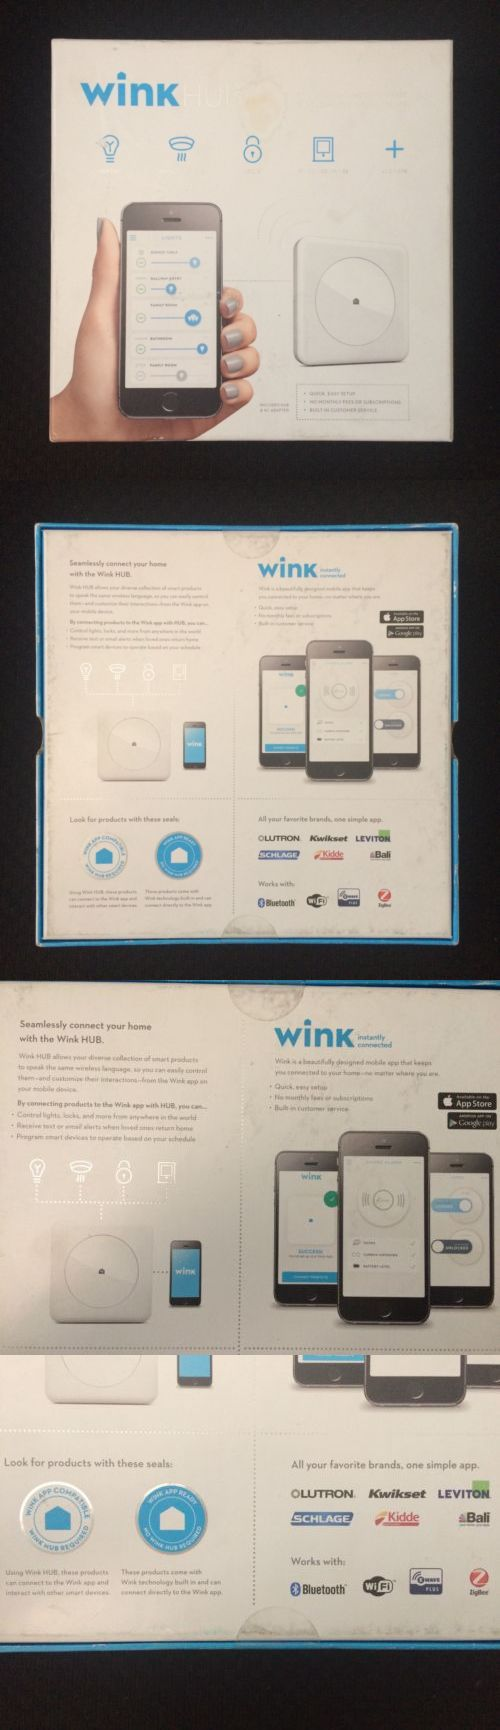 Controls and Touchscreens: Wink Connected Hub Home Automation Controller Wifi Z-Wave Zigbee Pwhub-Wh01 New! -> BUY IT NOW ONLY: $35.5 on eBay!